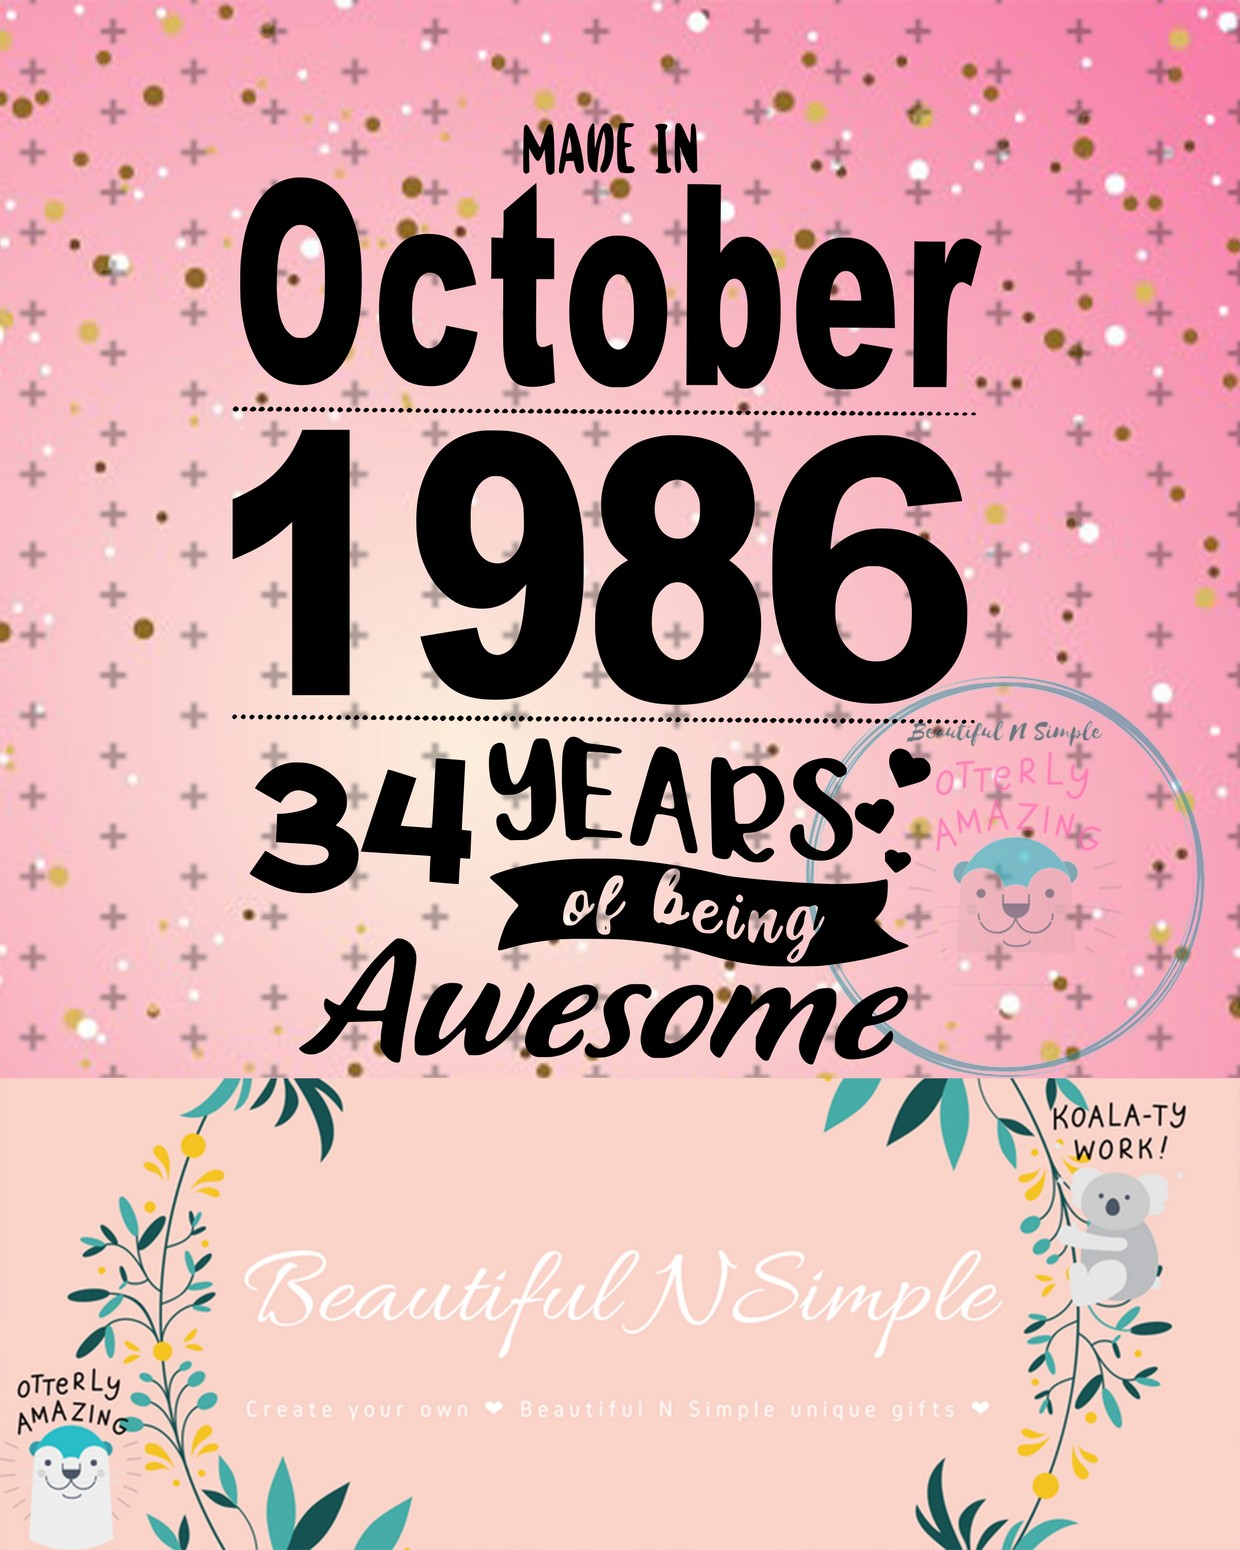 Made In October 1986 34 Years Of Being Awesome Svg And Beautifulnsimple